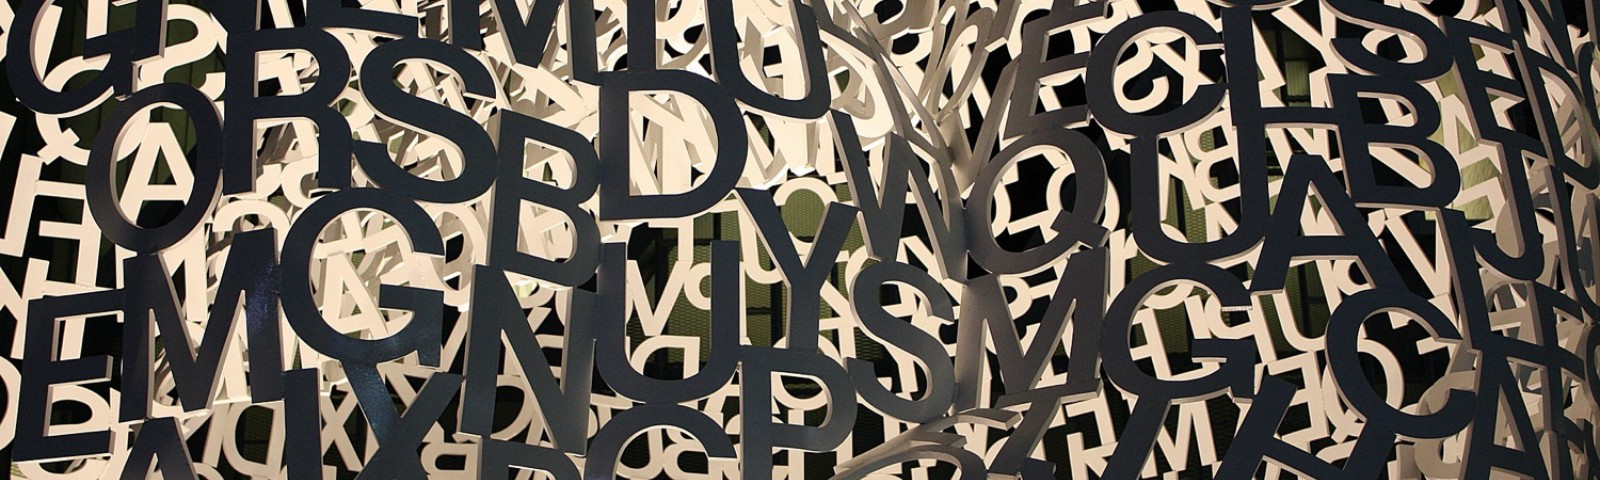 A jumble of cutout letters.